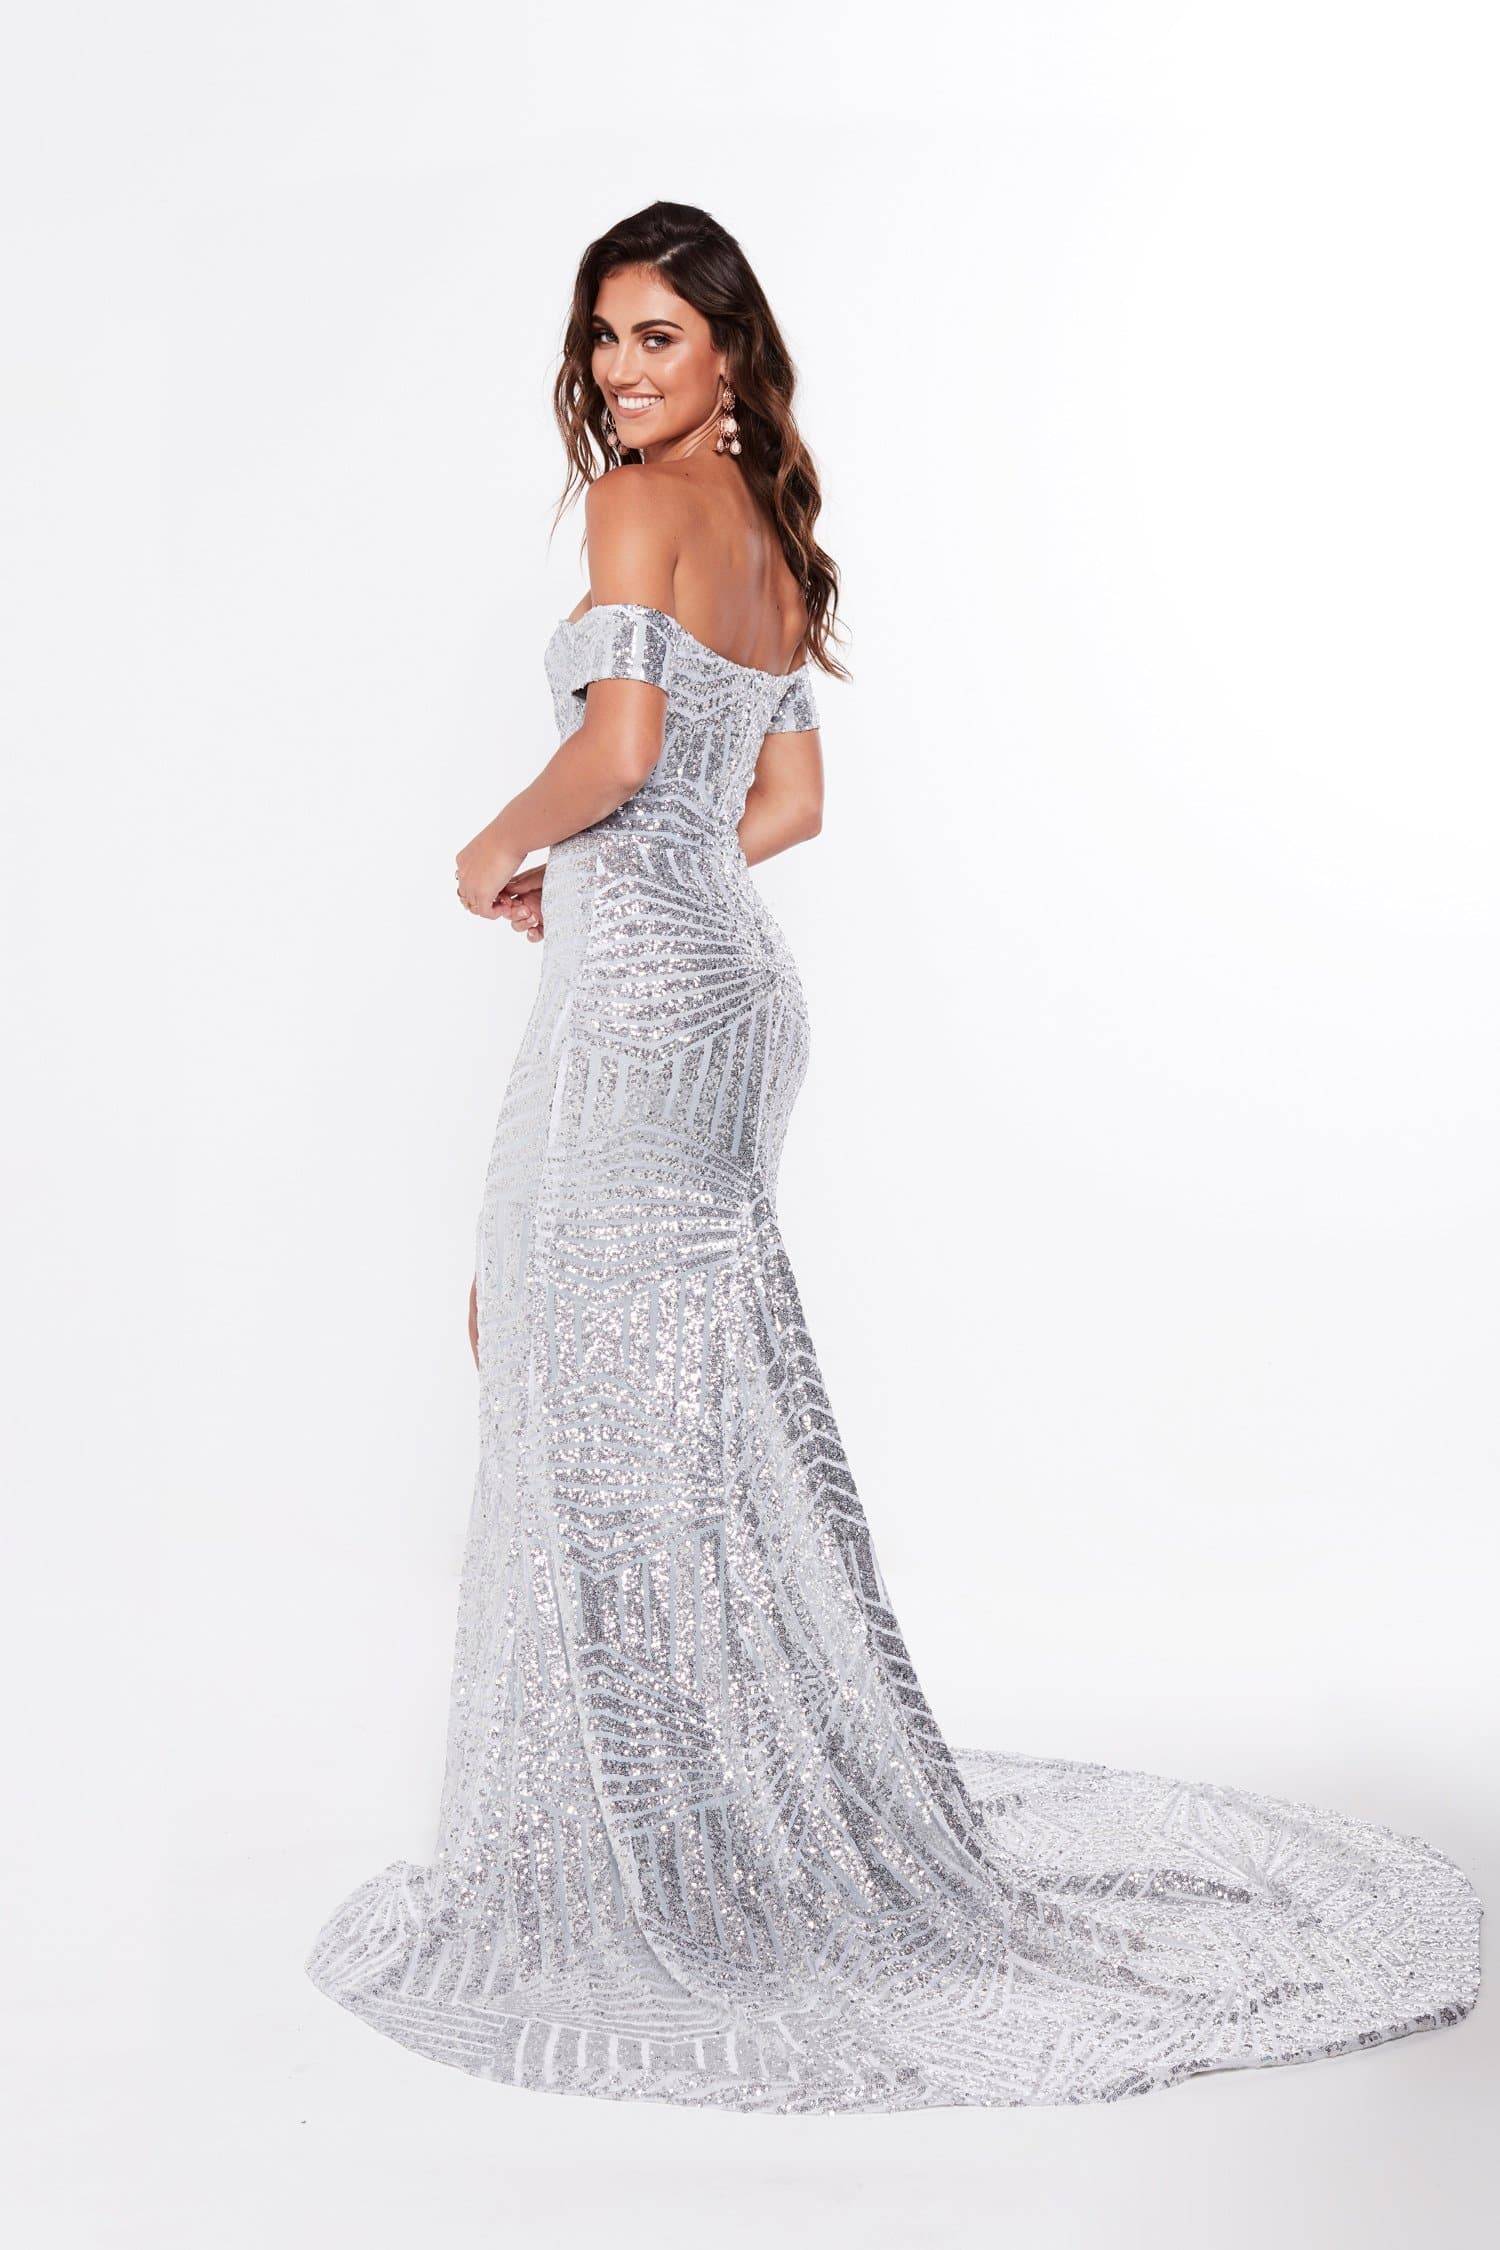 A&N Luxe Renata Off-Shoulder Gown - Silver